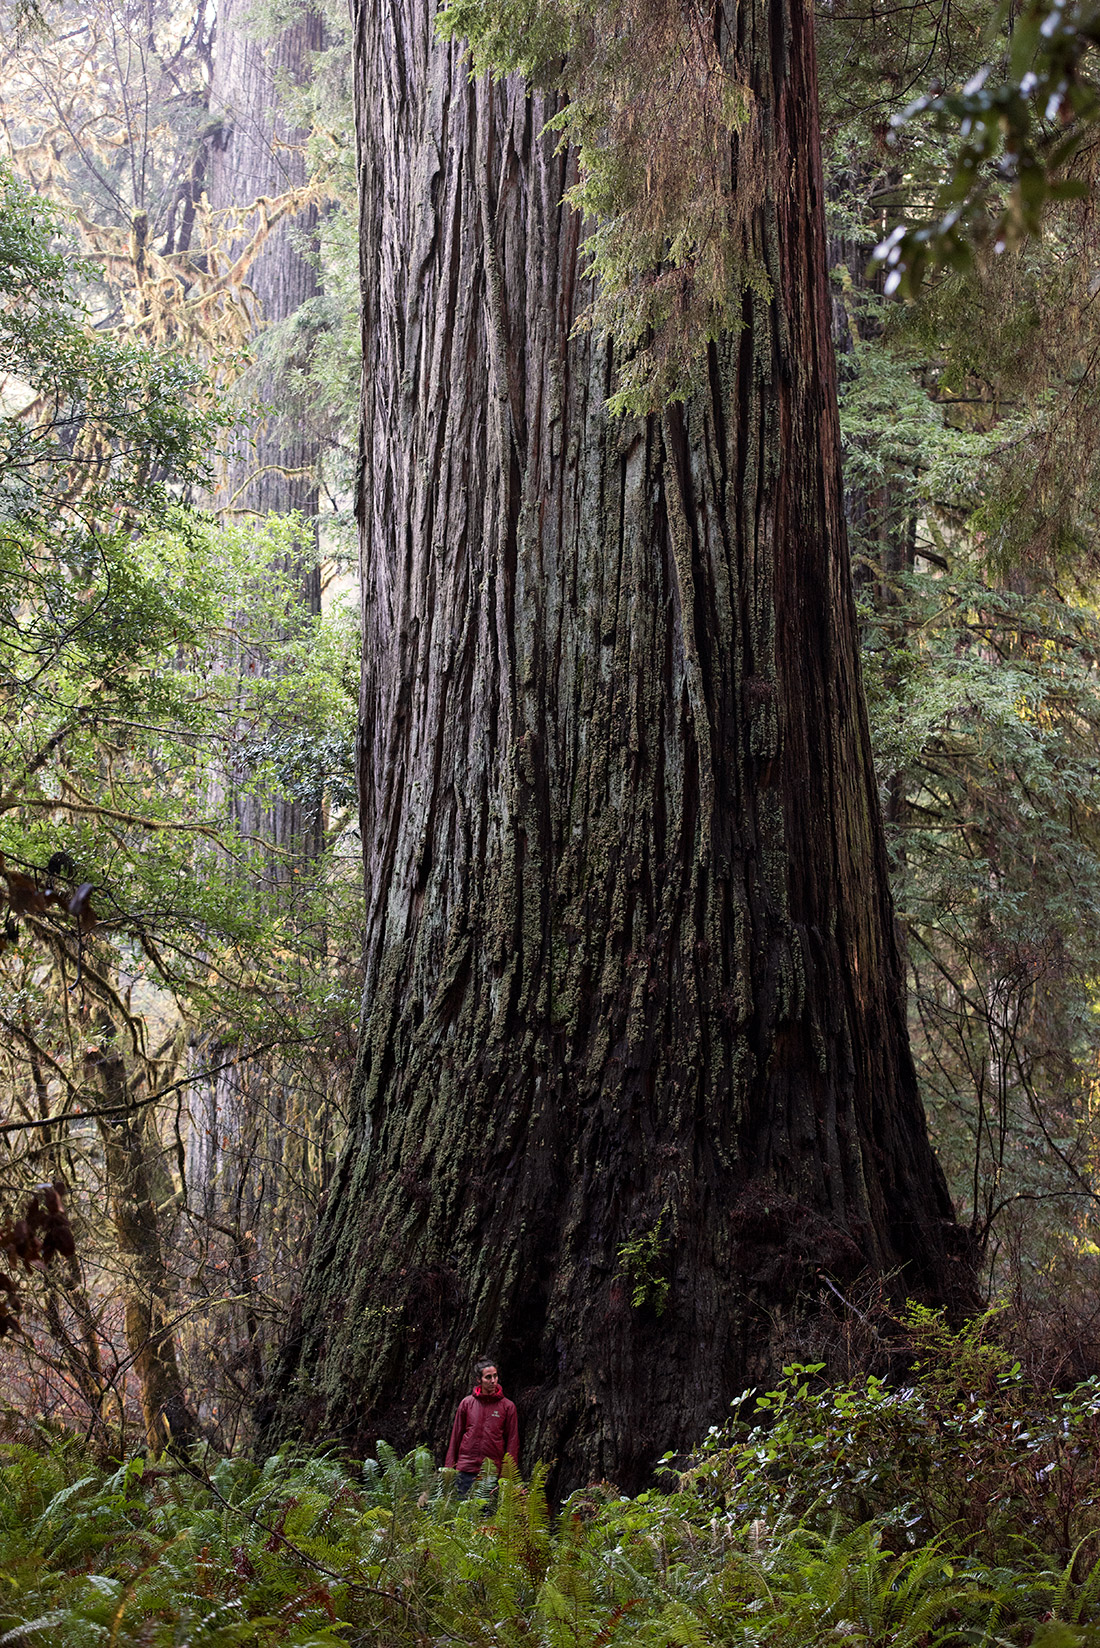 The National Co-Champion coast redwood